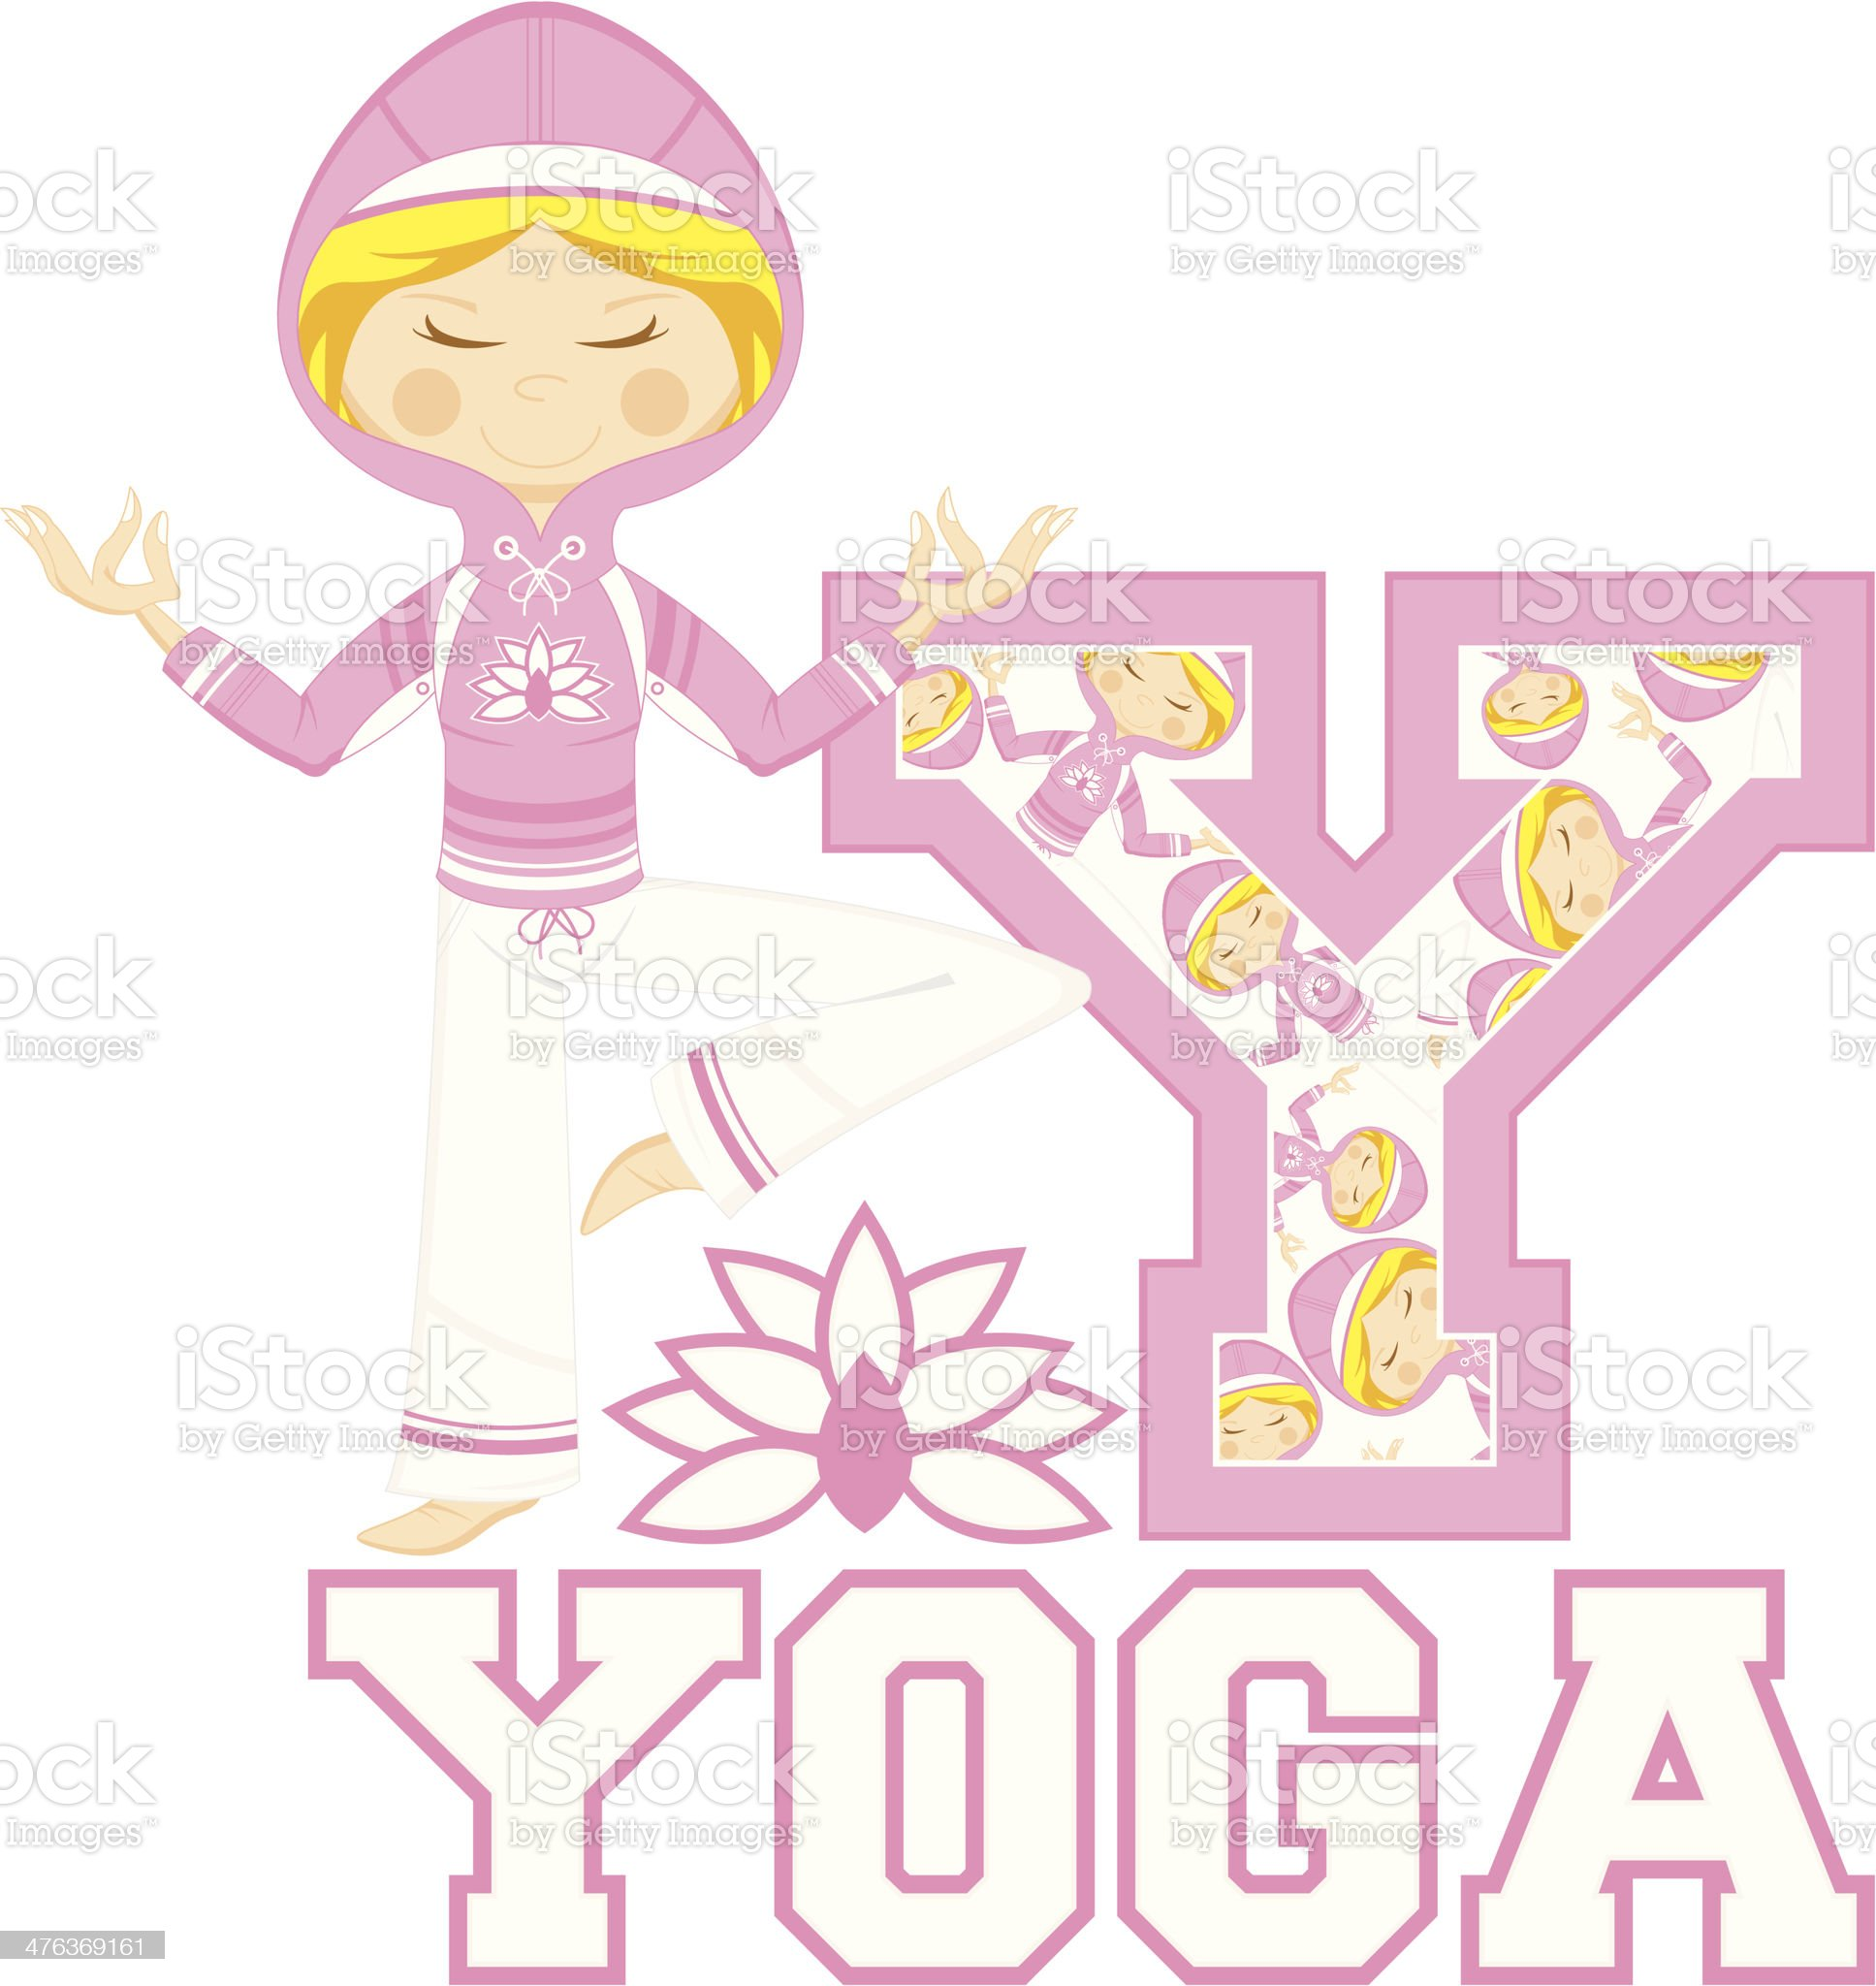 Yoga Girl Learning Letter Y royalty-free stock vector art